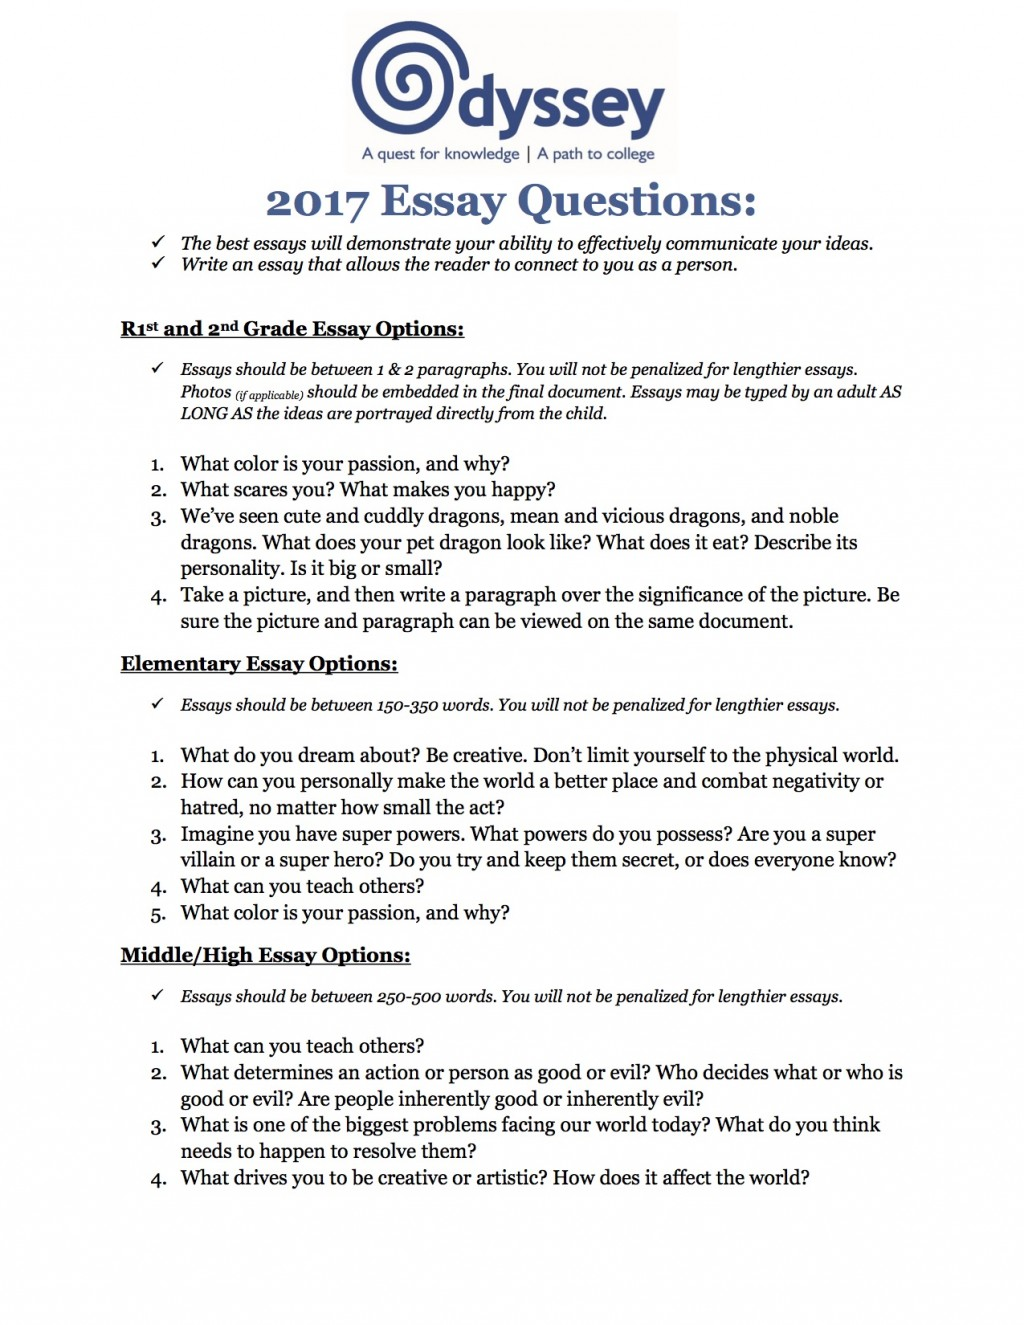 008 Student Essay Example The Odyssey Topics Greek Family How To Good Awesome Sat Examples Transfer Large